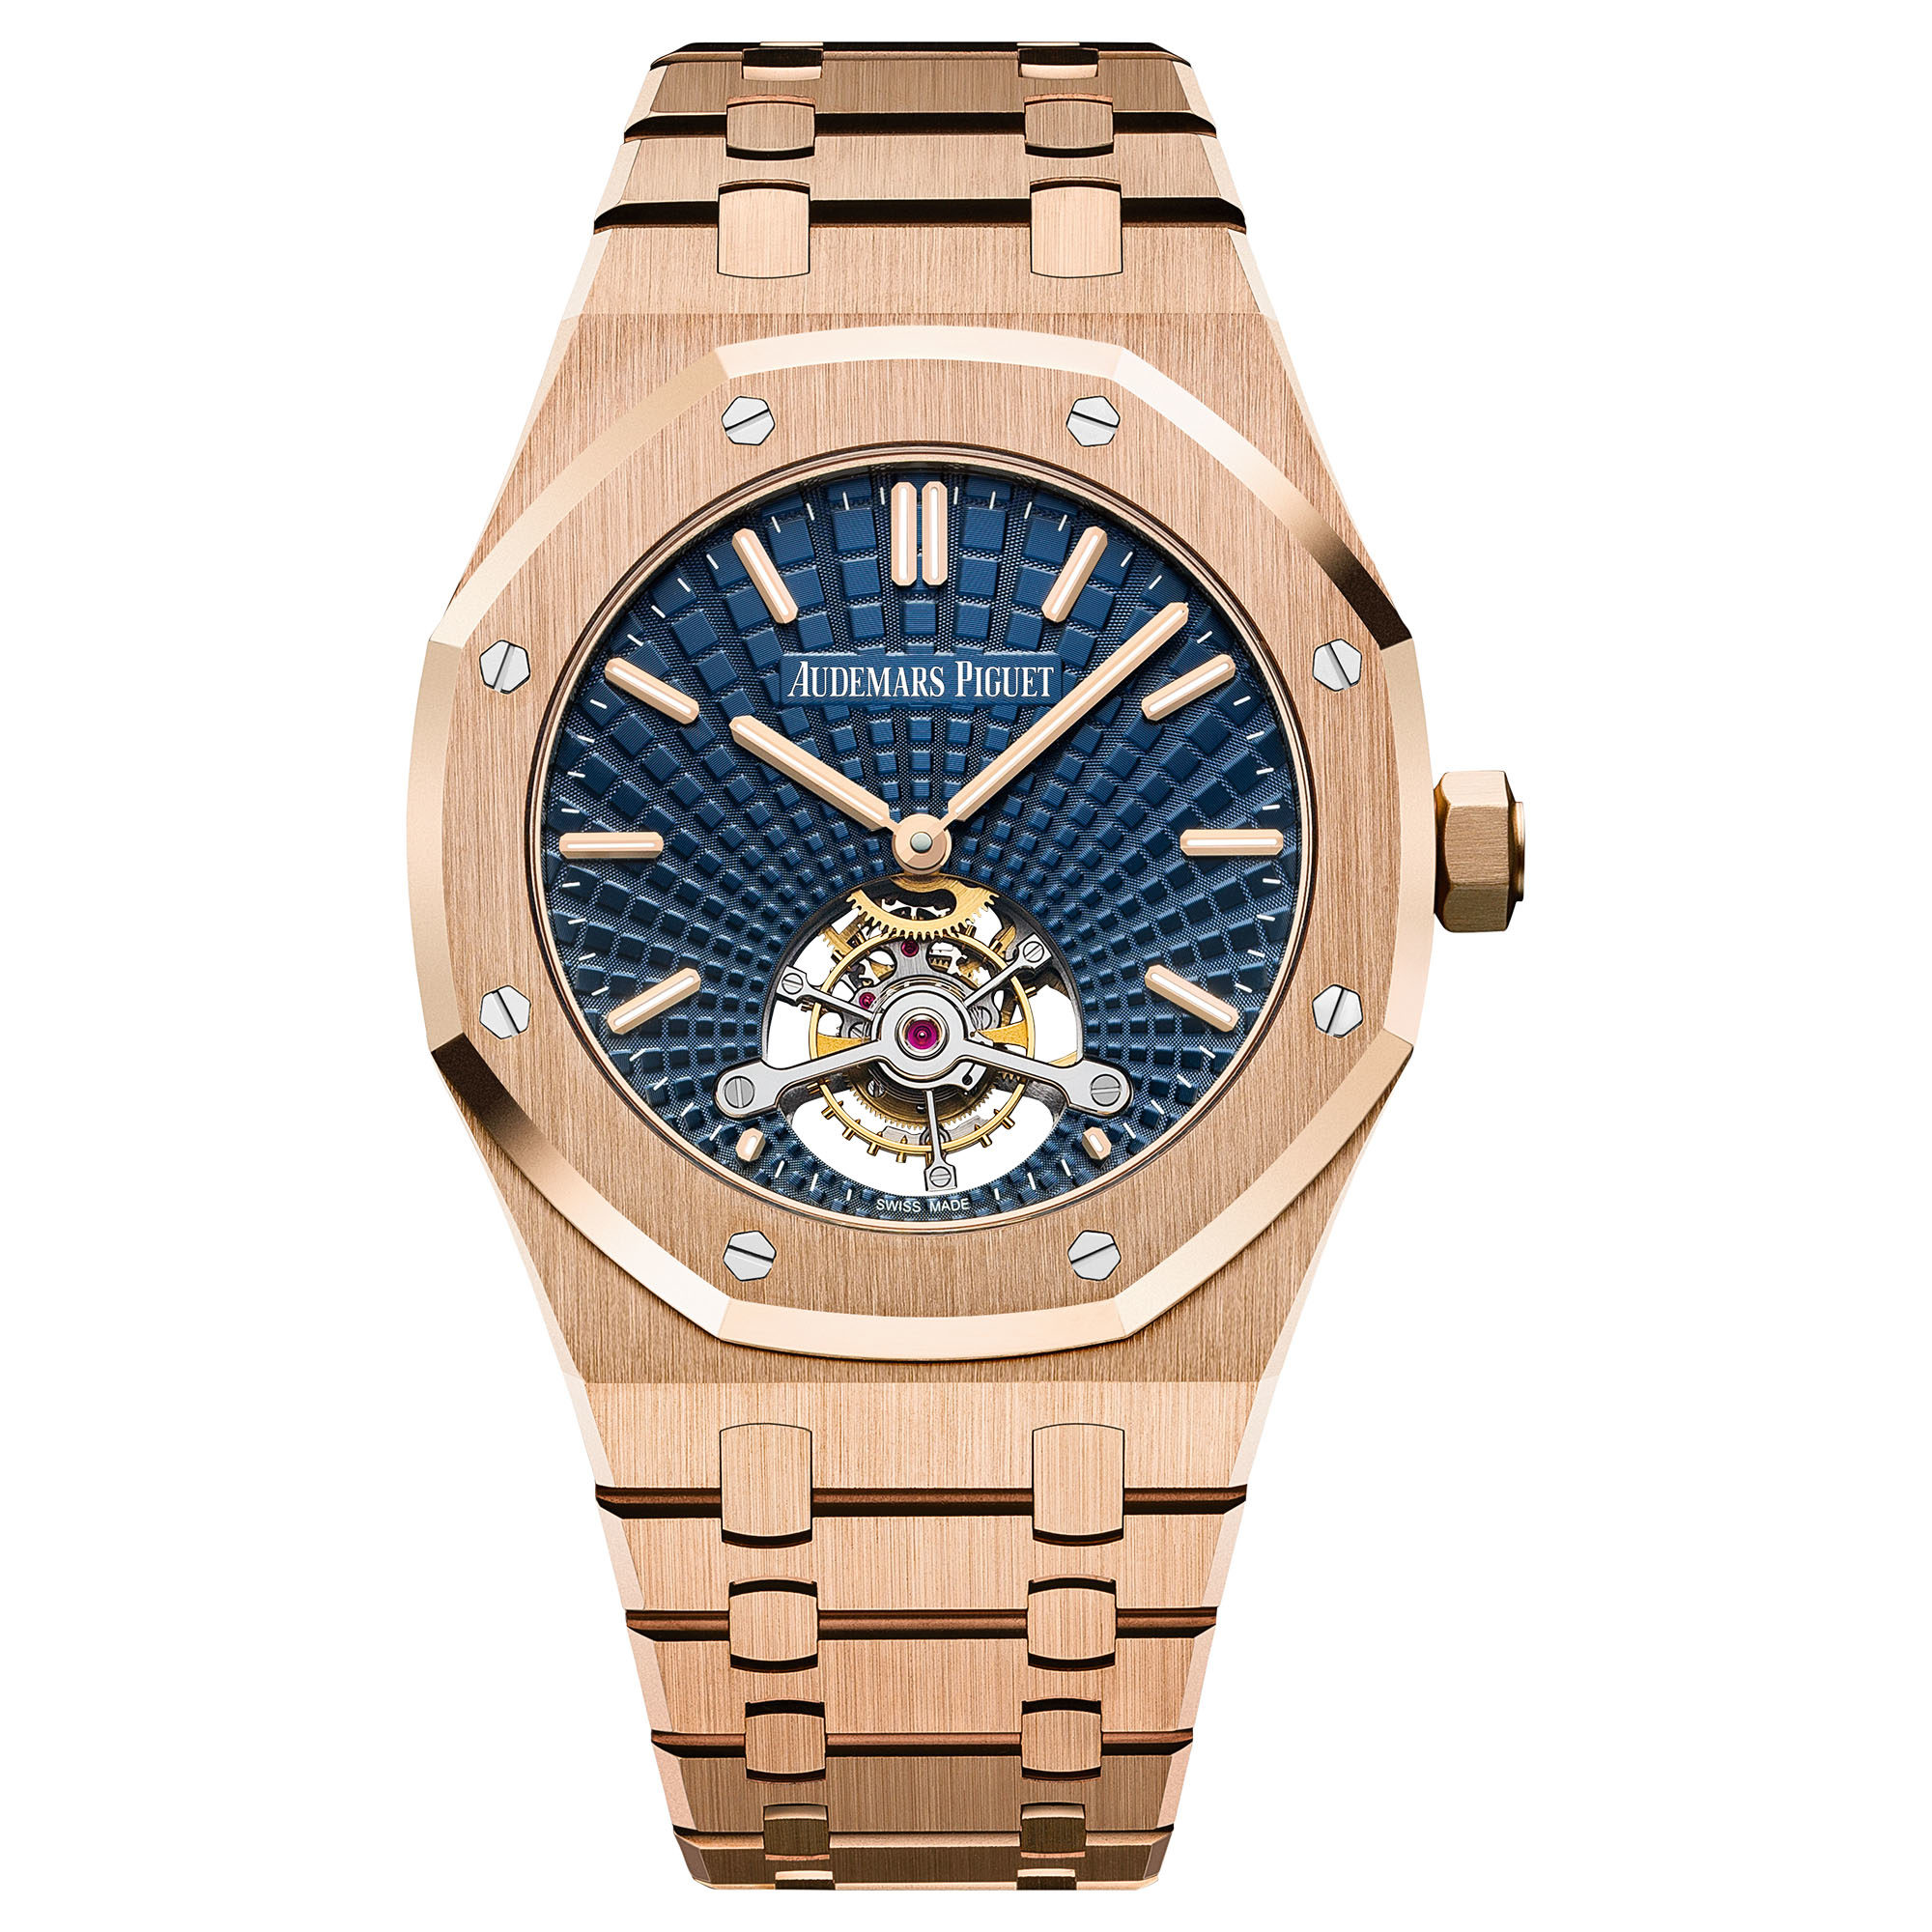 Buy Luxury Replica Audemars Piguet Royal Oak Tourbillon Extra-Thin 26522OR.OO.1220OR.01 watch